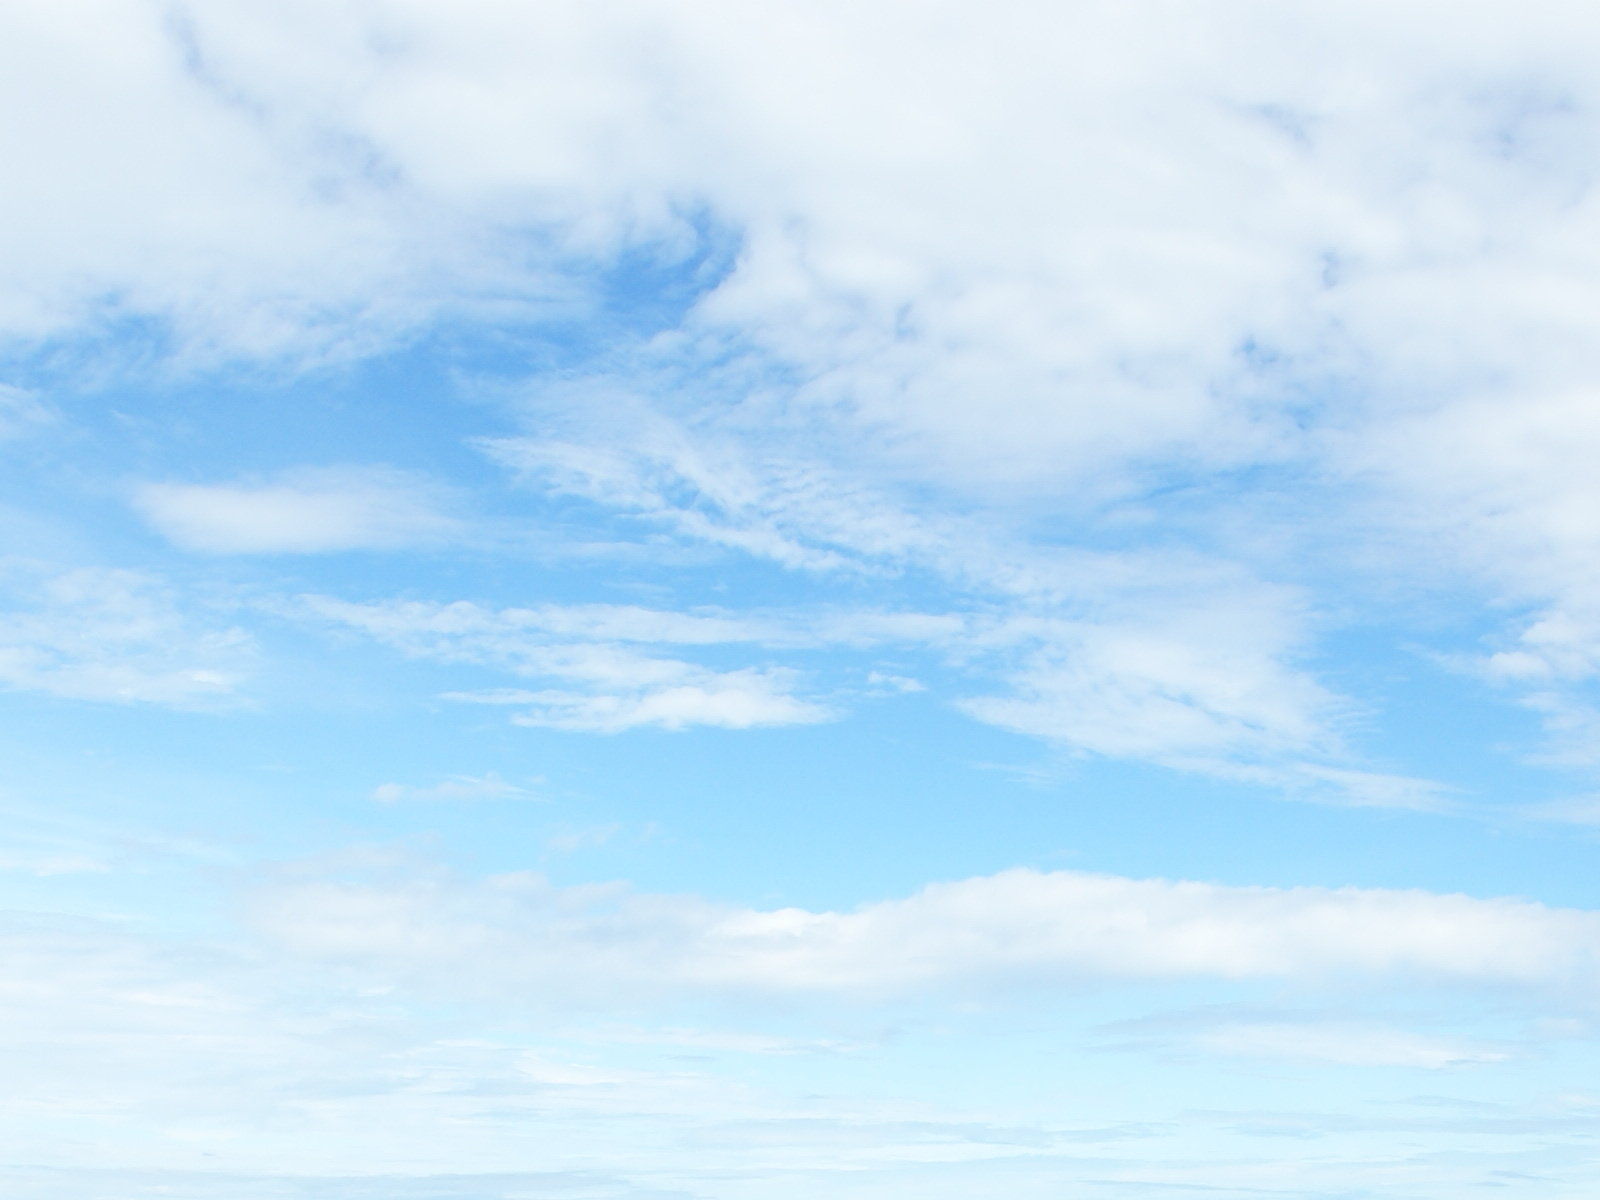 blue sky clouds wallpaper With Resolutions 16001200 Pixel 1600x1200